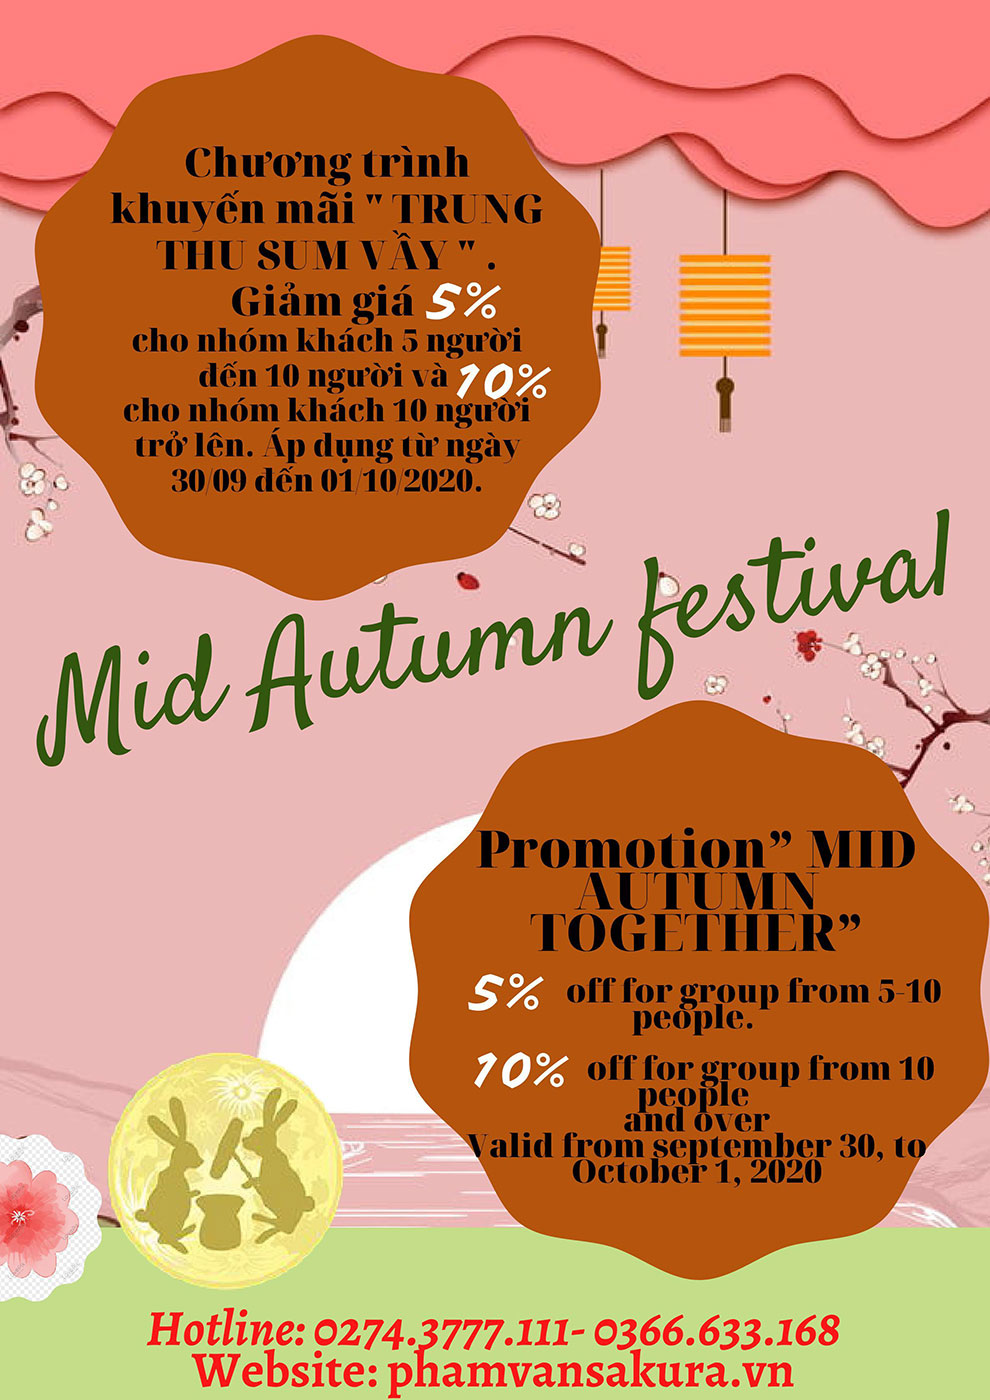 """Promotion """"MID AUTUMN TOGETHER"""""""